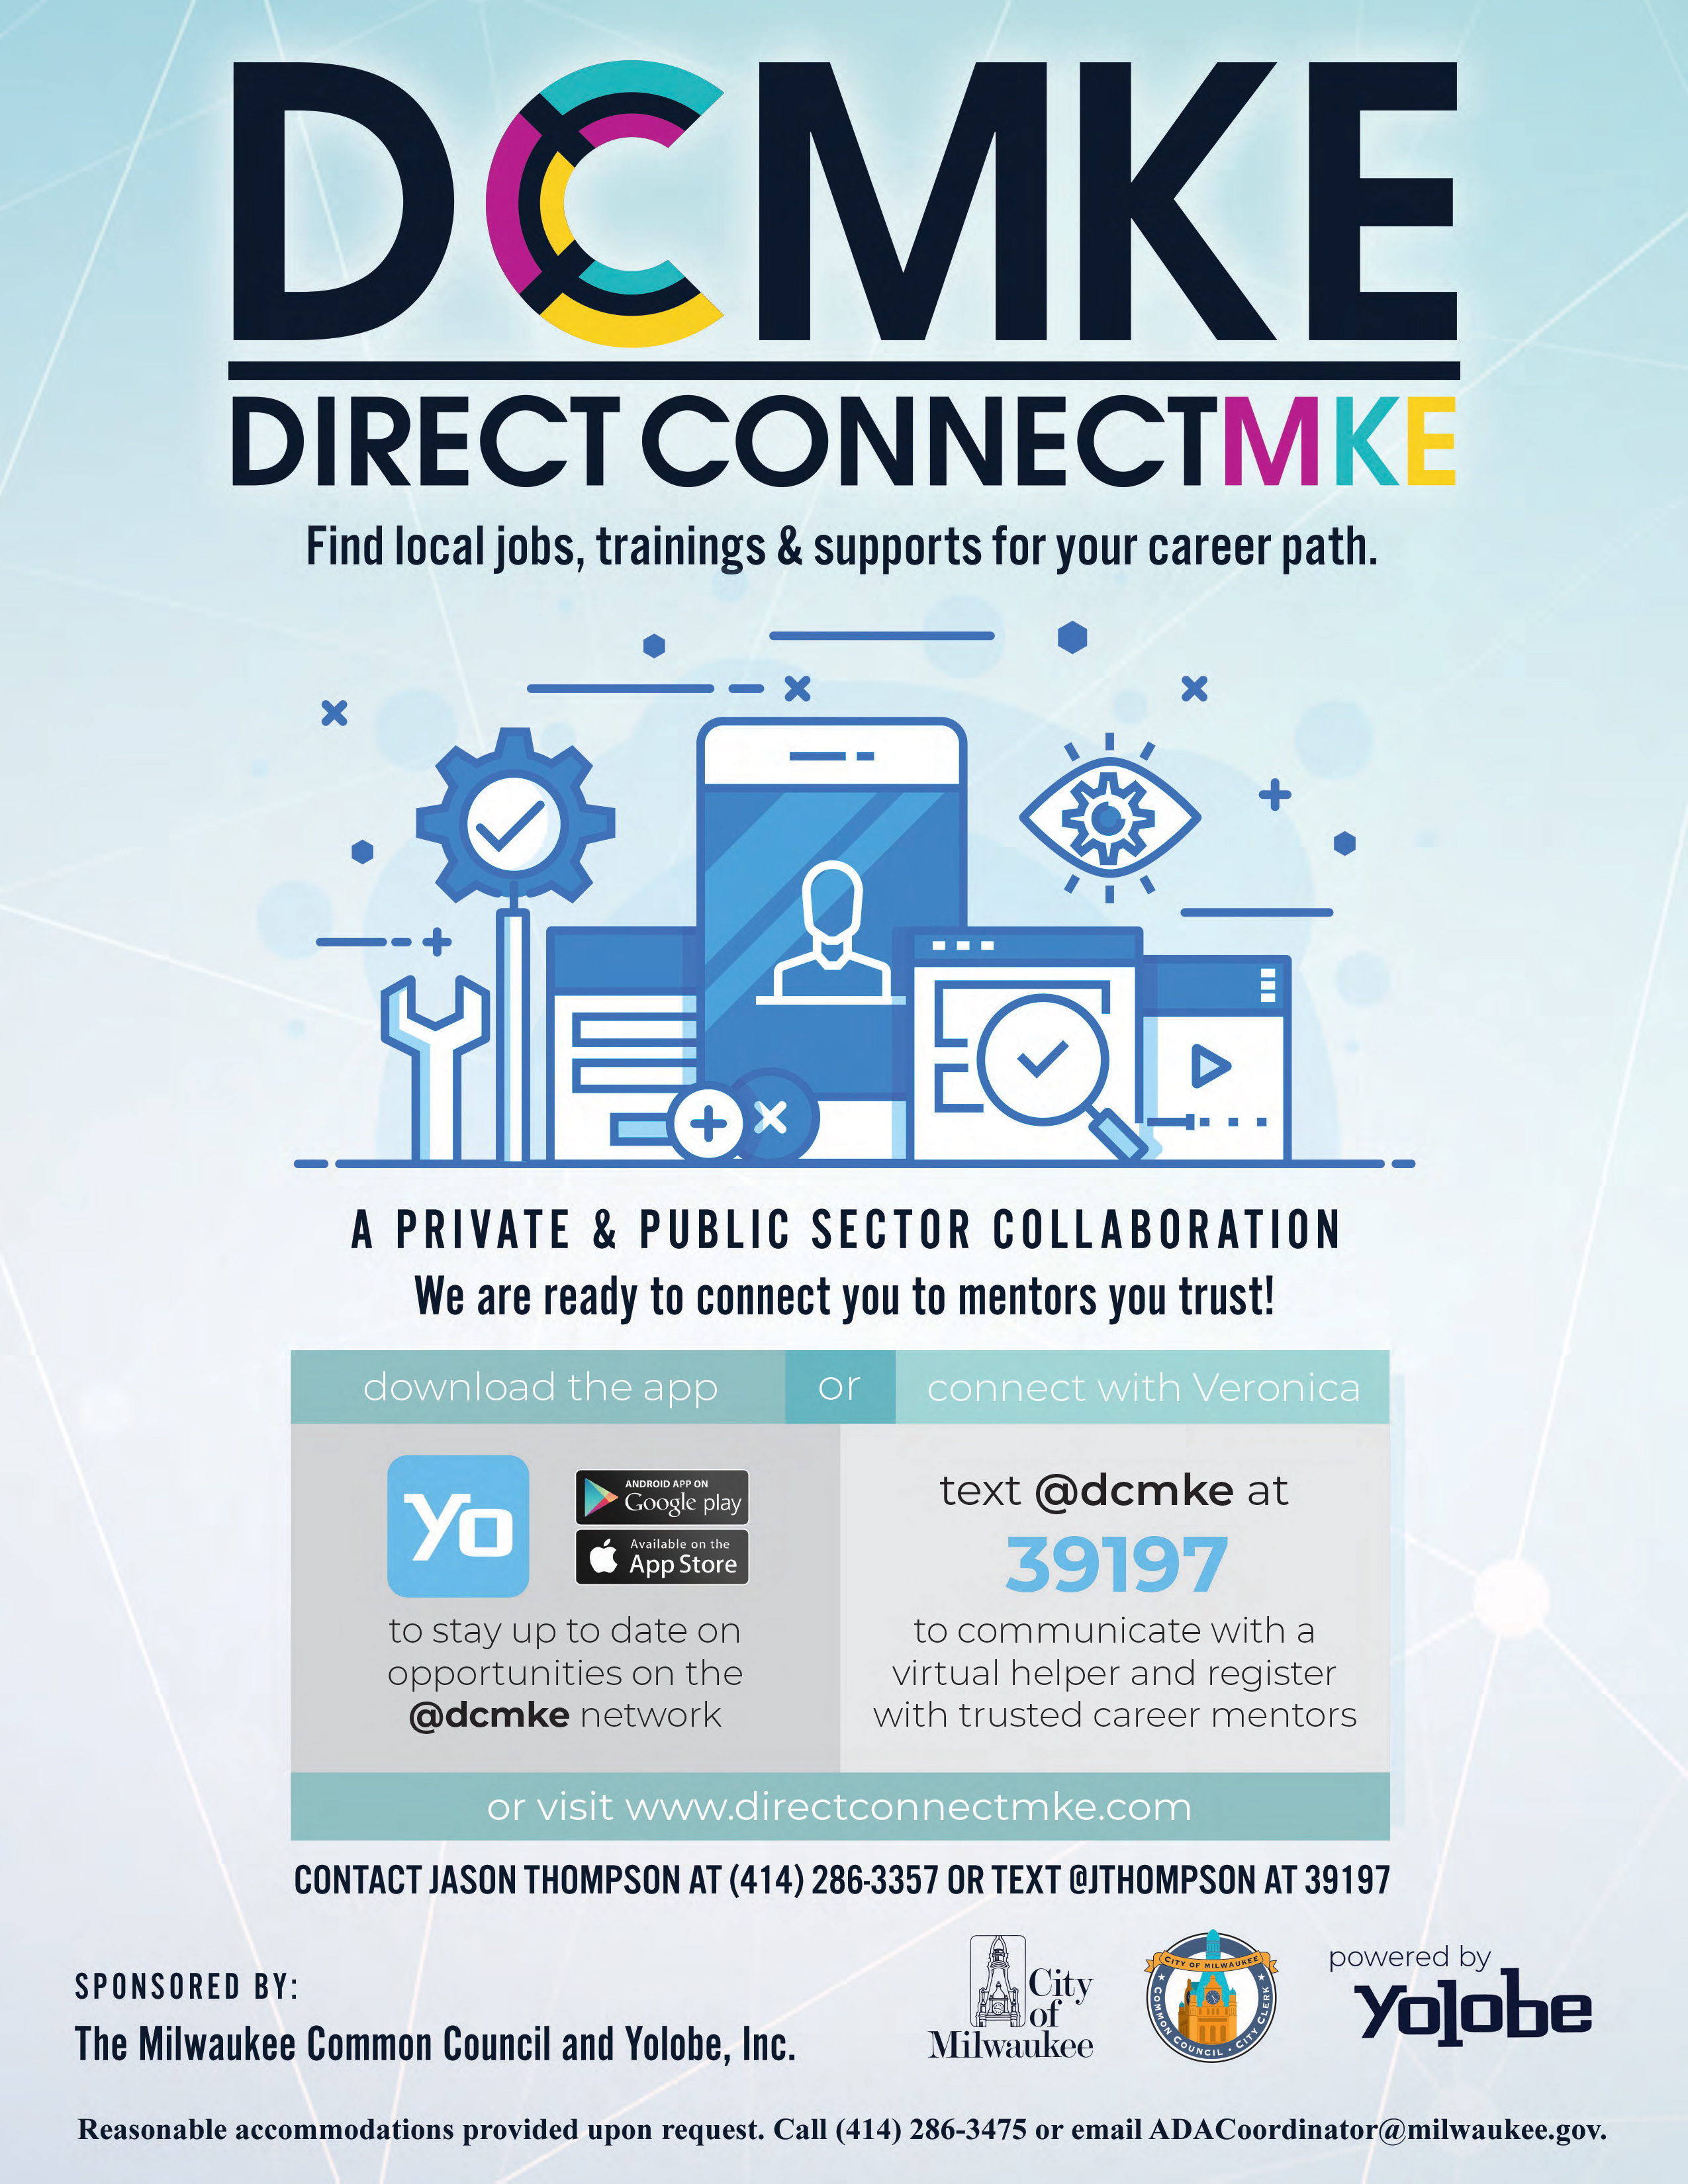 Full launch of new DirectConnectMKE jobs platform taking place TODAY